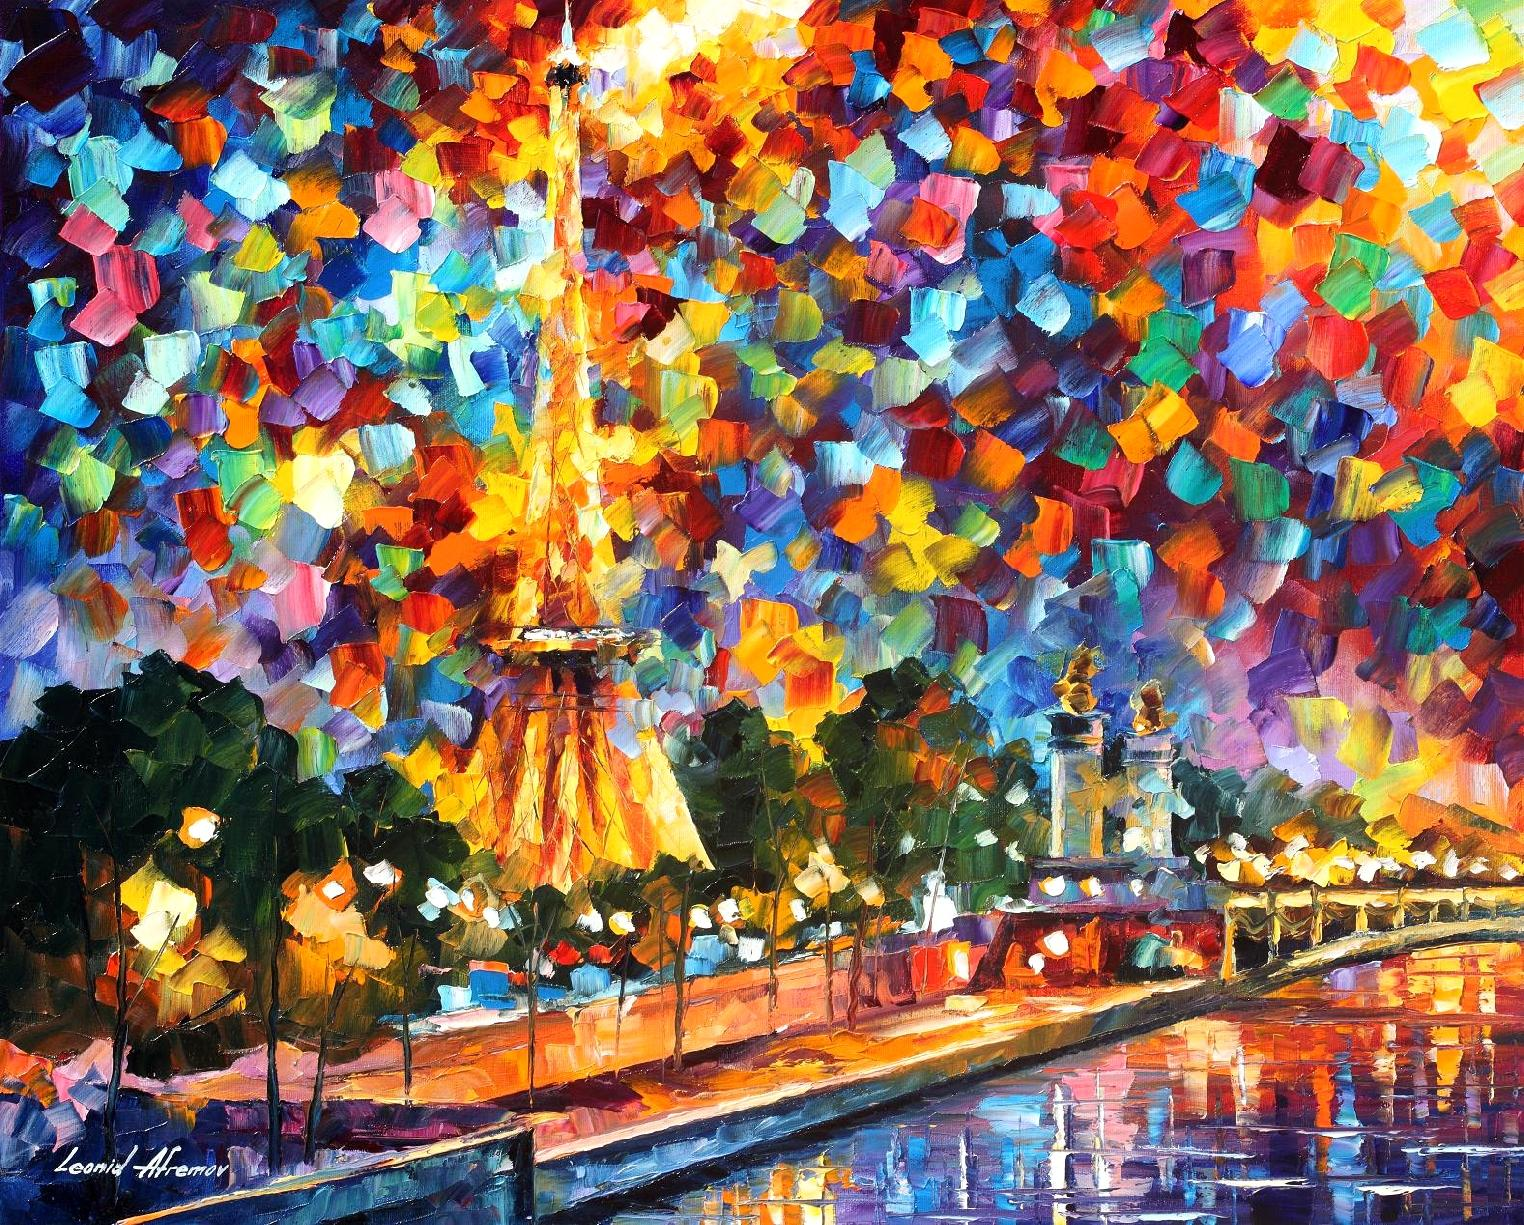 "NIGHT IN PARIS  - Palette Knife Oil Painting On Canvas By Leonid Afremov - 30X24"" (75cm x 60cm) (offer)"